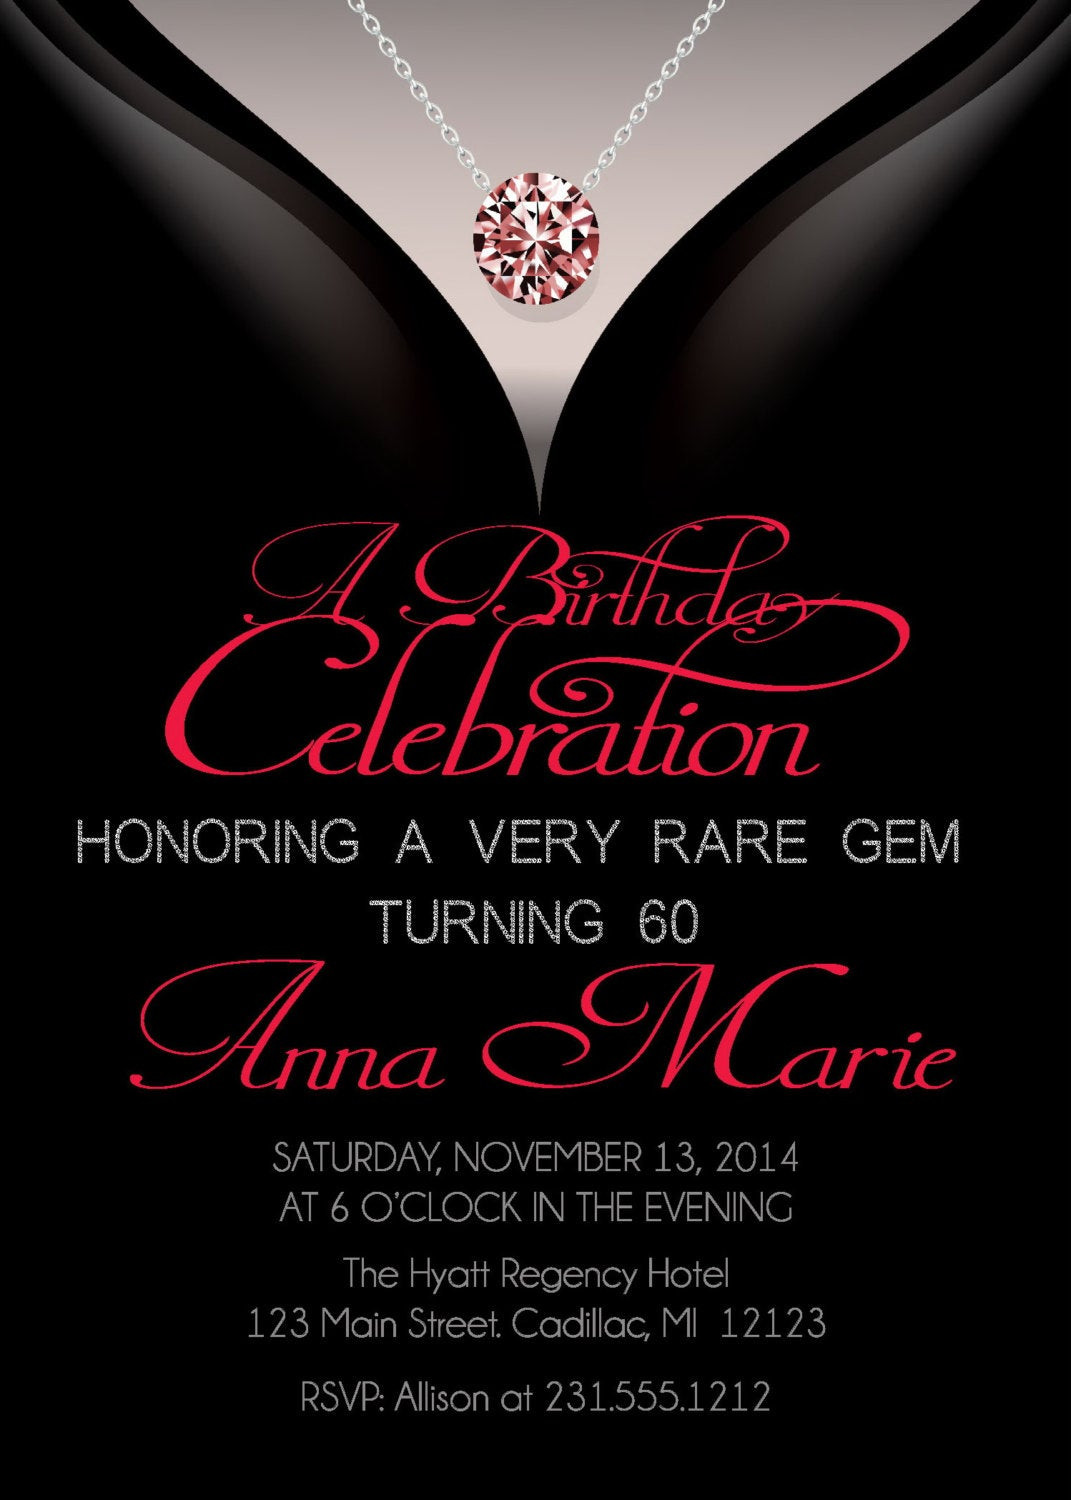 Best ideas about 60th Birthday Invitations . Save or Pin 60th Birthday Invitations Adult Birthday Invitation Now.